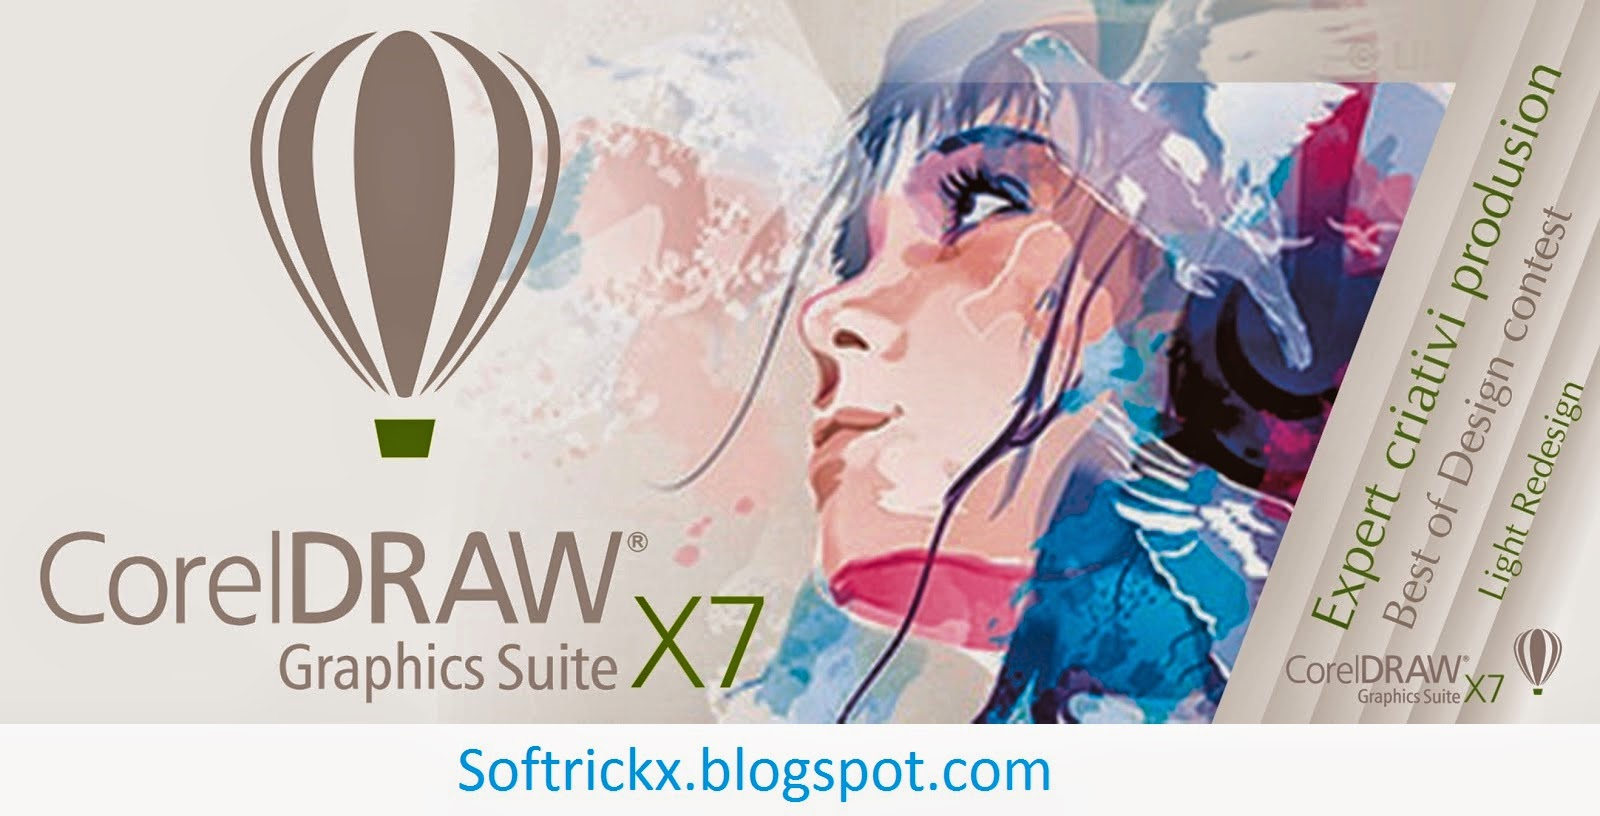 Coreldraw Graphics Suite X7 17 0 0 491 With Crack Softrickx